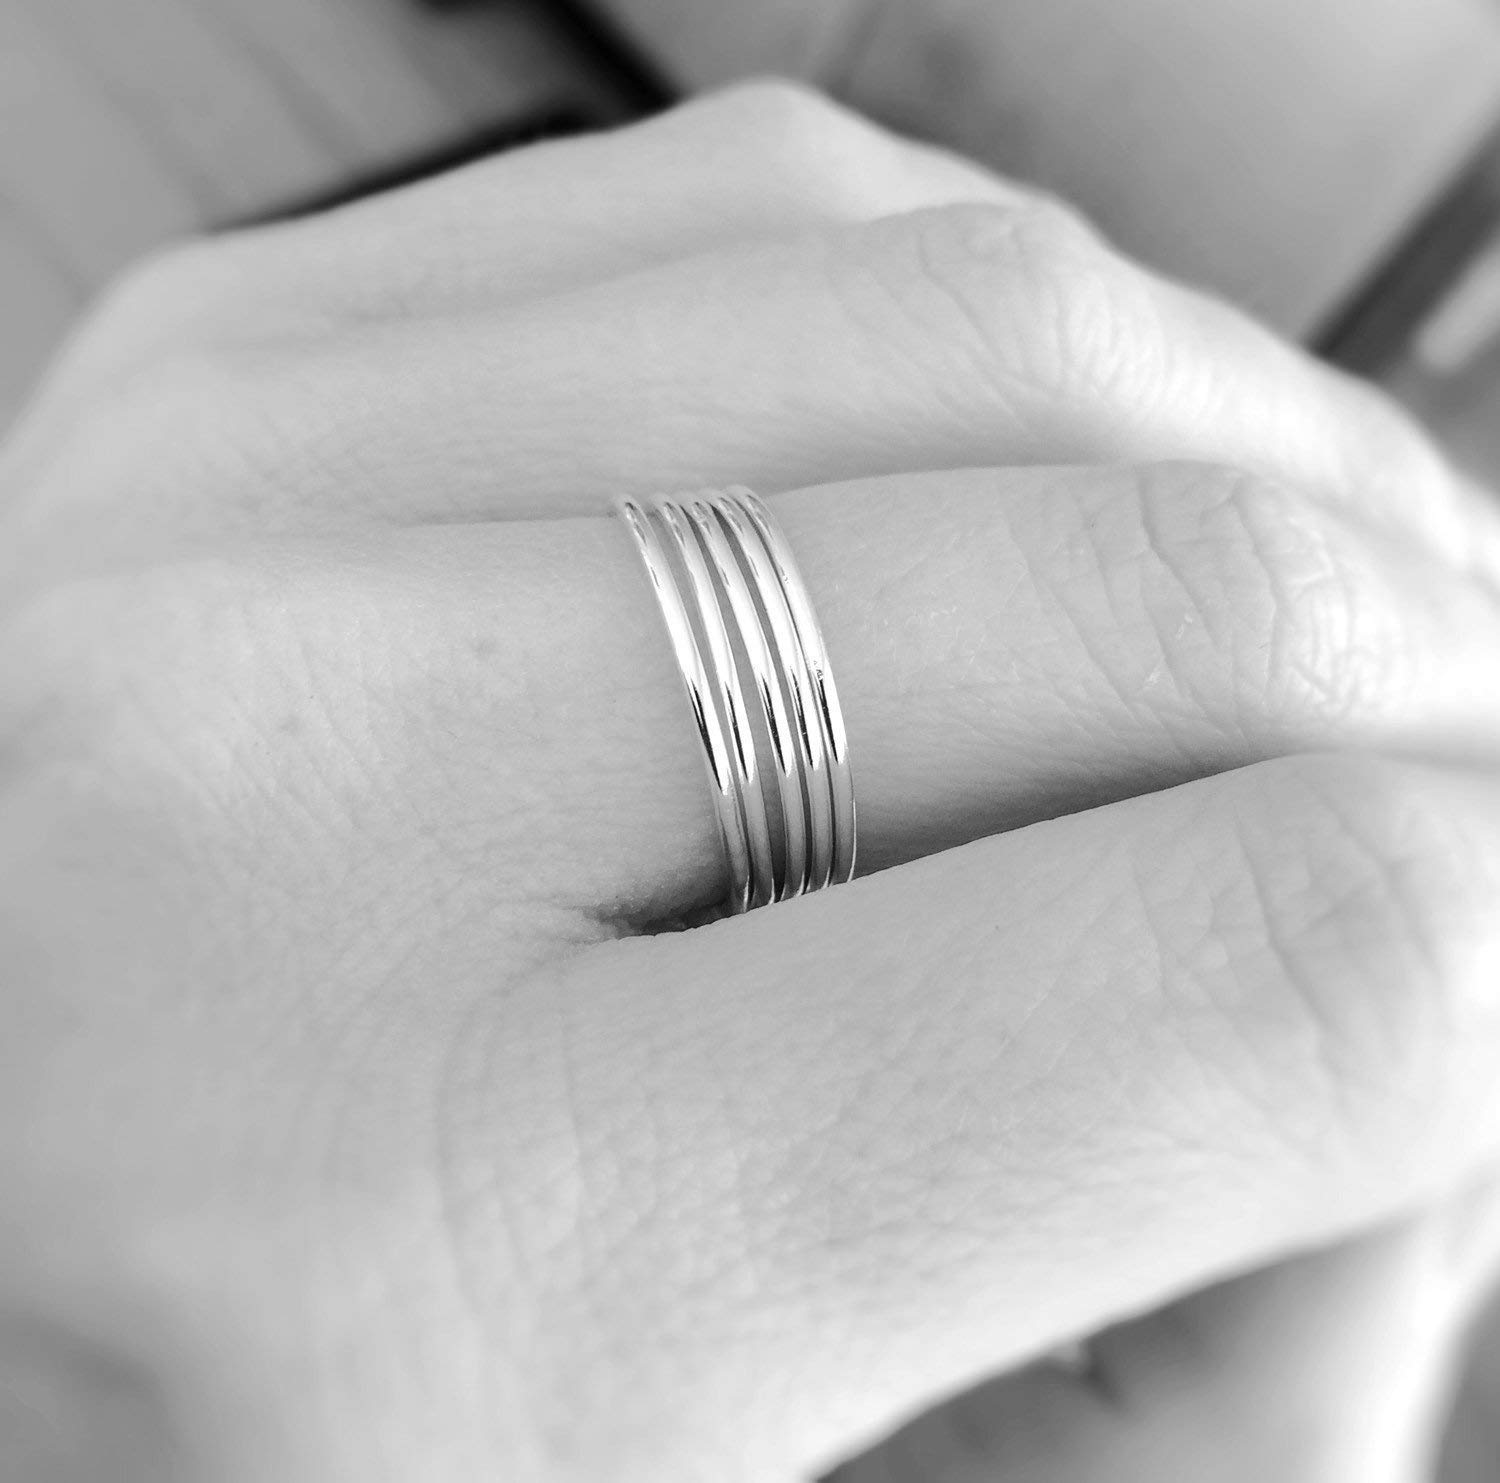 1 Smooth Slim Gold Stacking Ring,Knuckle, or Thumb Rings,Gold Rings,Stacking Rings,Knuckle Rings,Skinny Rings,Thin Rings, Slim Ring